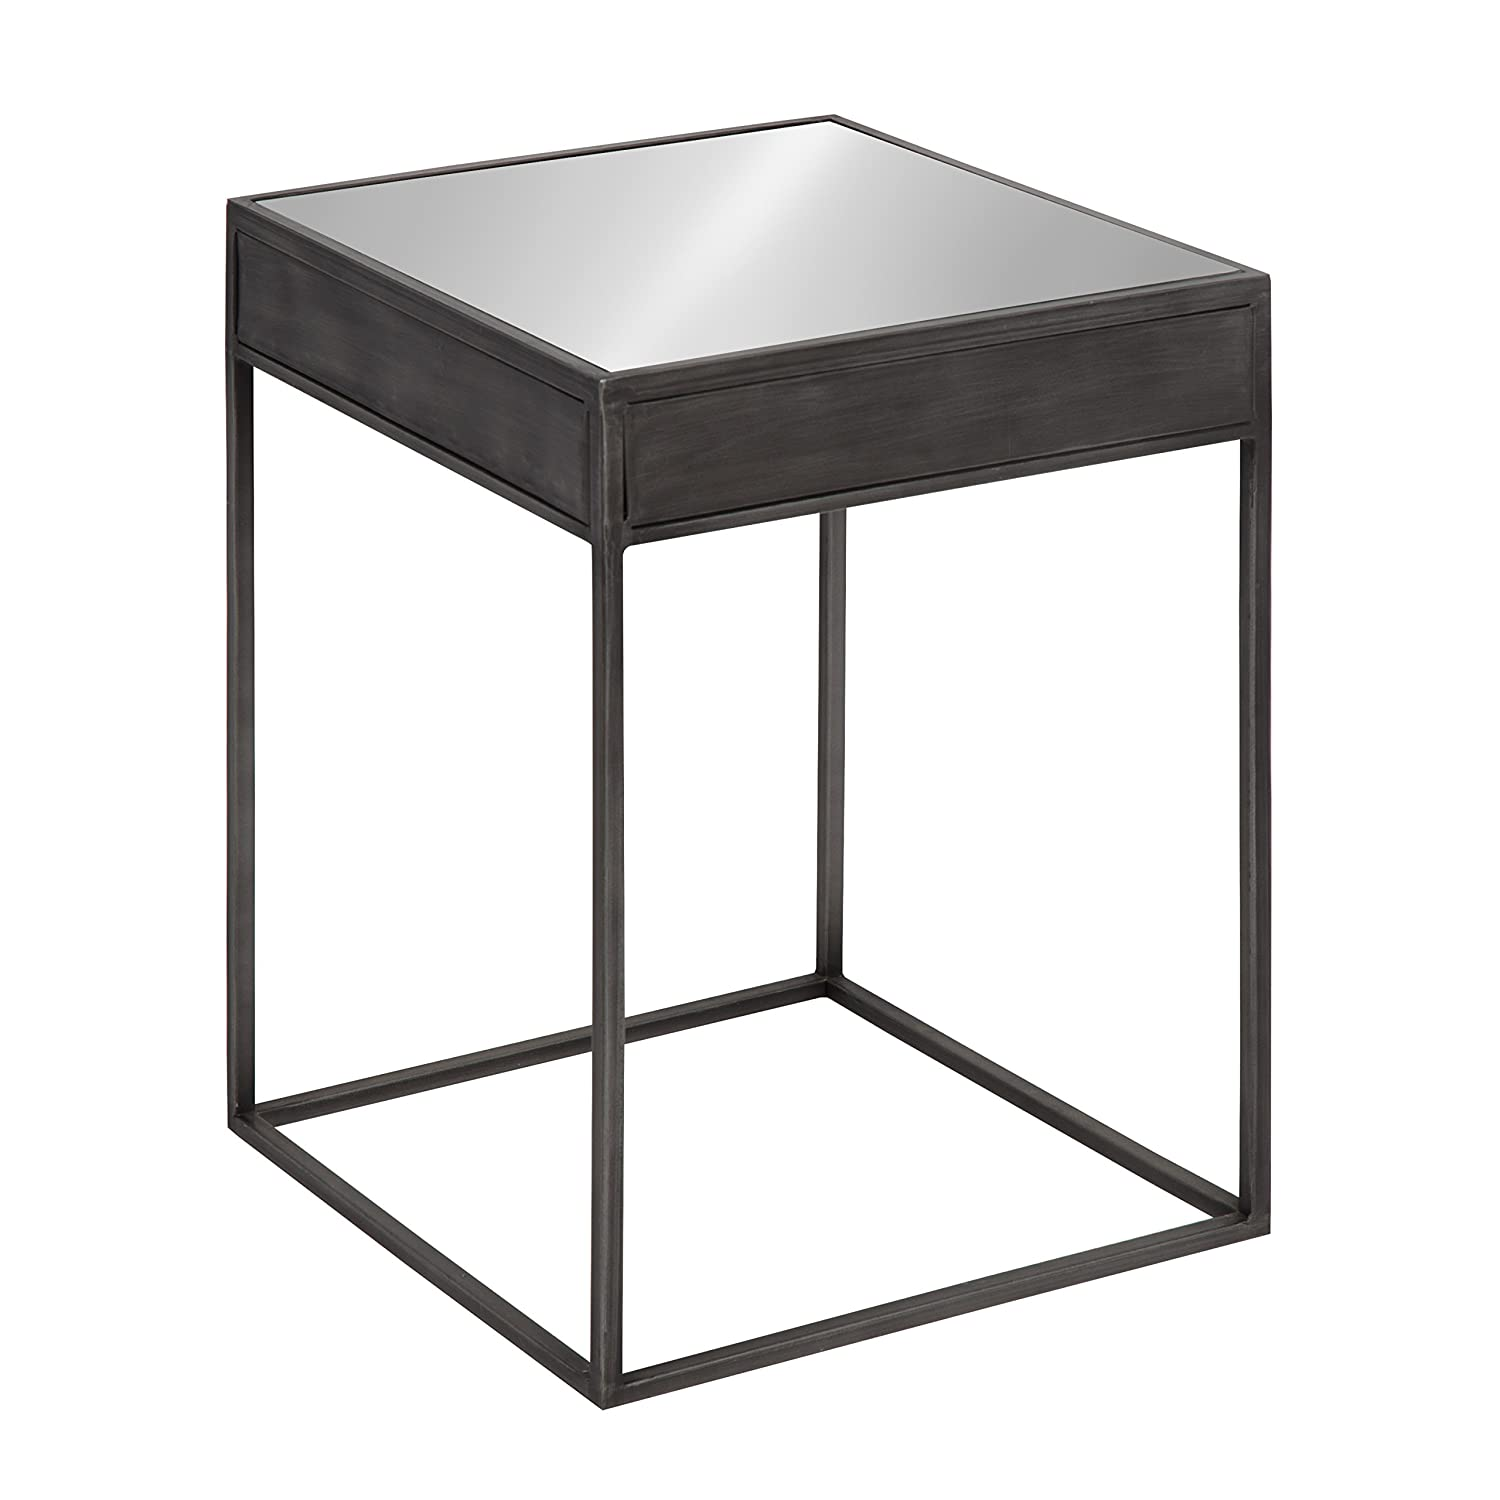 Kate and laurel aleksand industrial modern square mirror and metal accent side end table metallic gray 16 inches wide x 16 inches deep x 22 inches tall